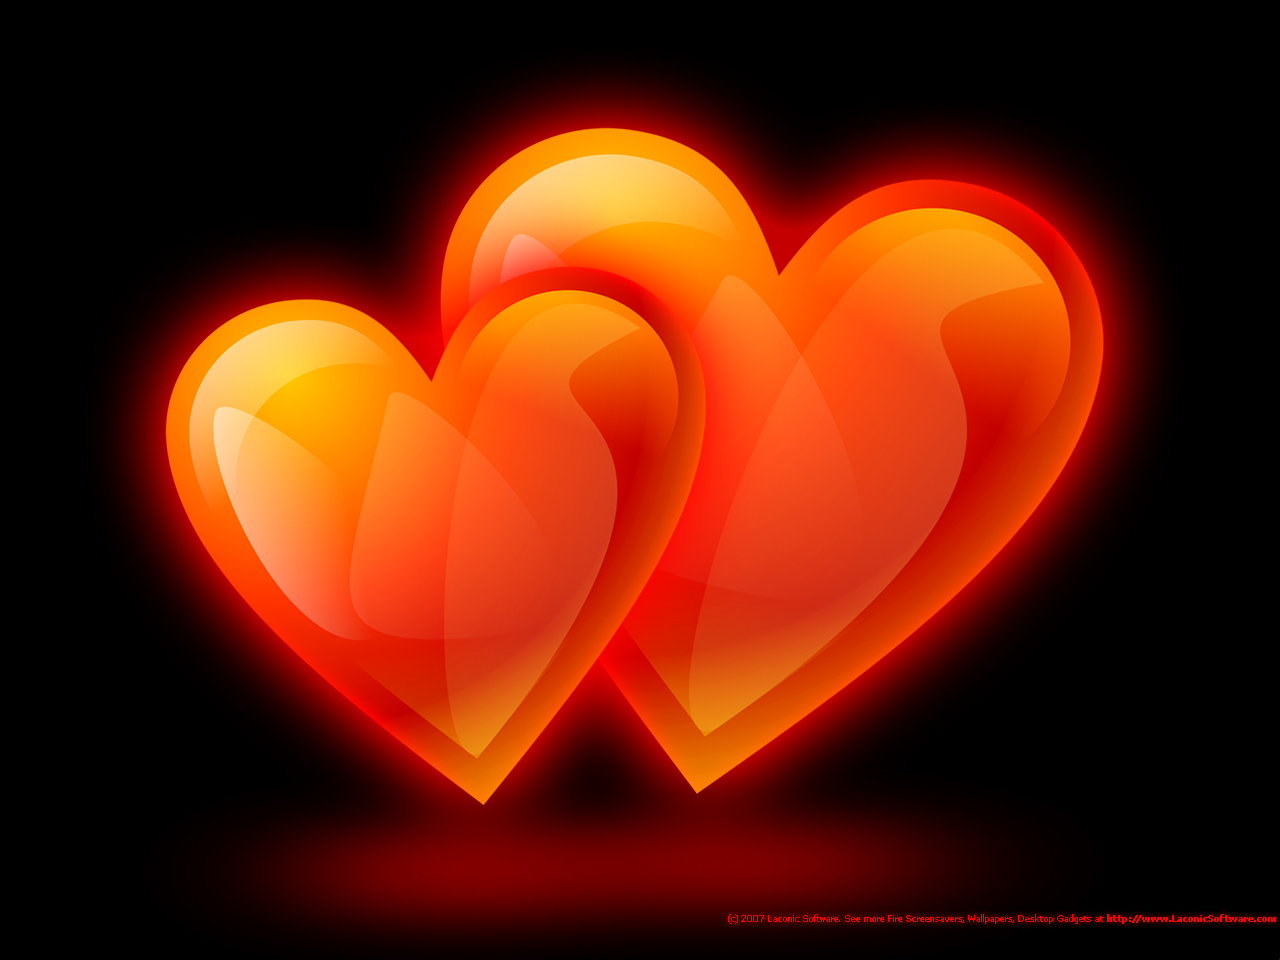 http://1.bp.blogspot.com/-Sc0hfth901U/To3PY9NnLbI/AAAAAAAAAJo/a3fIp2Tseak/s1600/couple-of-hearts-of-flame-wallpaper-1280x960.jpg